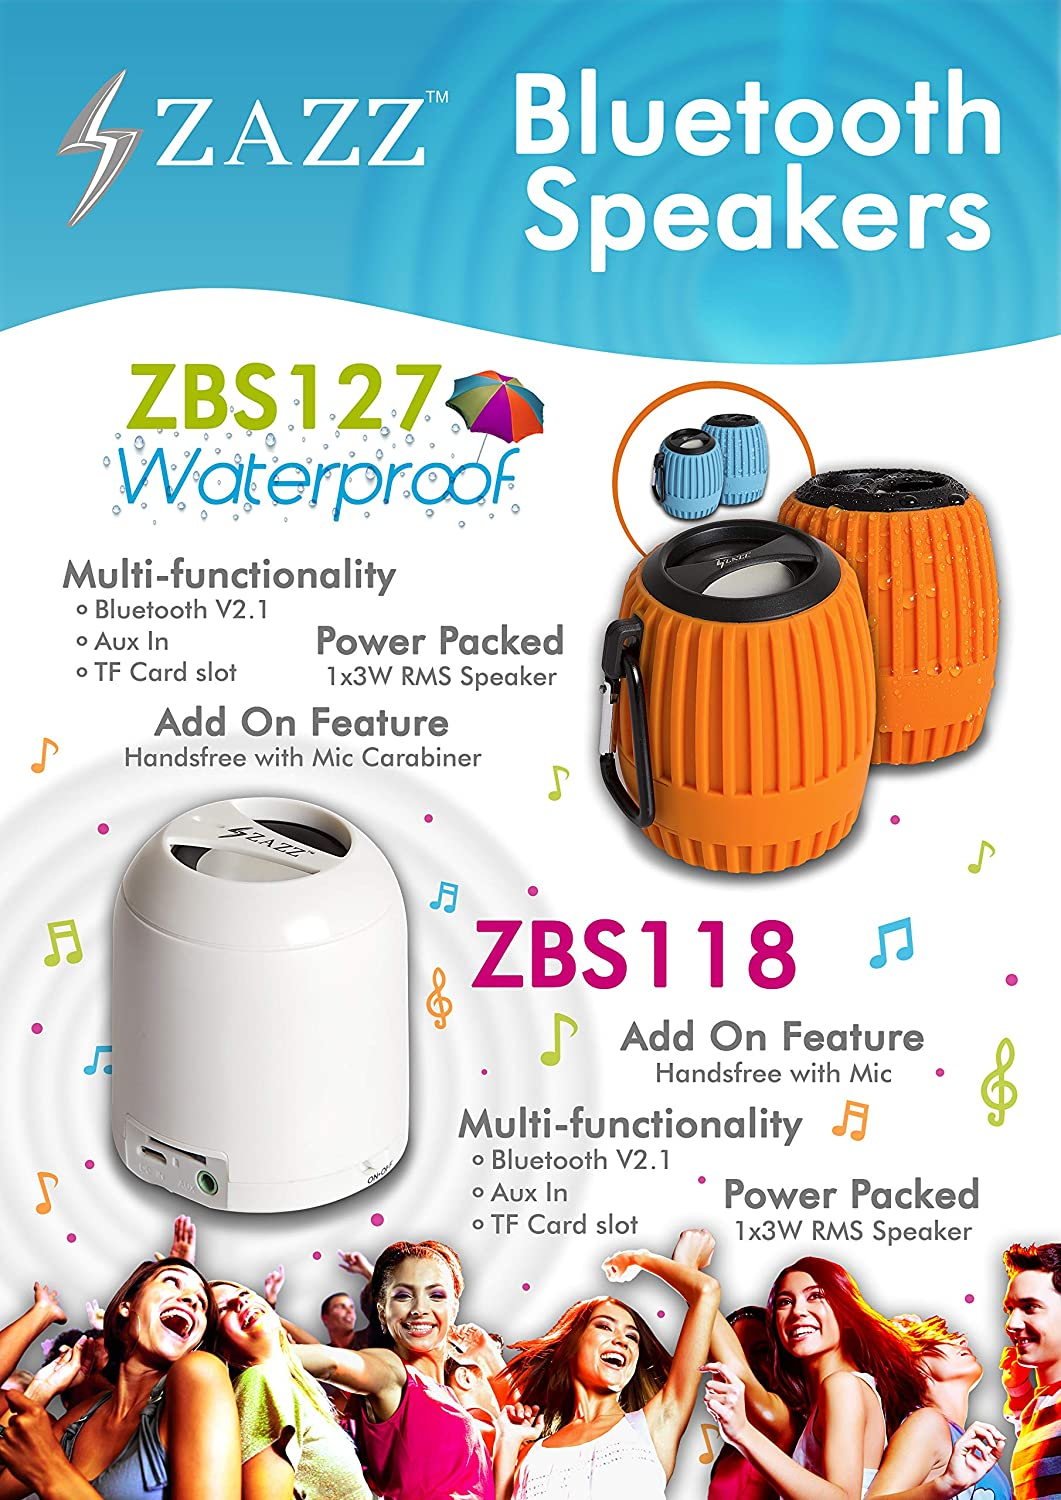 Blue ZAZZ Portable Waterproof Bluetooth Speaker with Clip-on tablets Rich Bass and Noise Cancelling Speakerphone Louder Volume compatible with smartphone